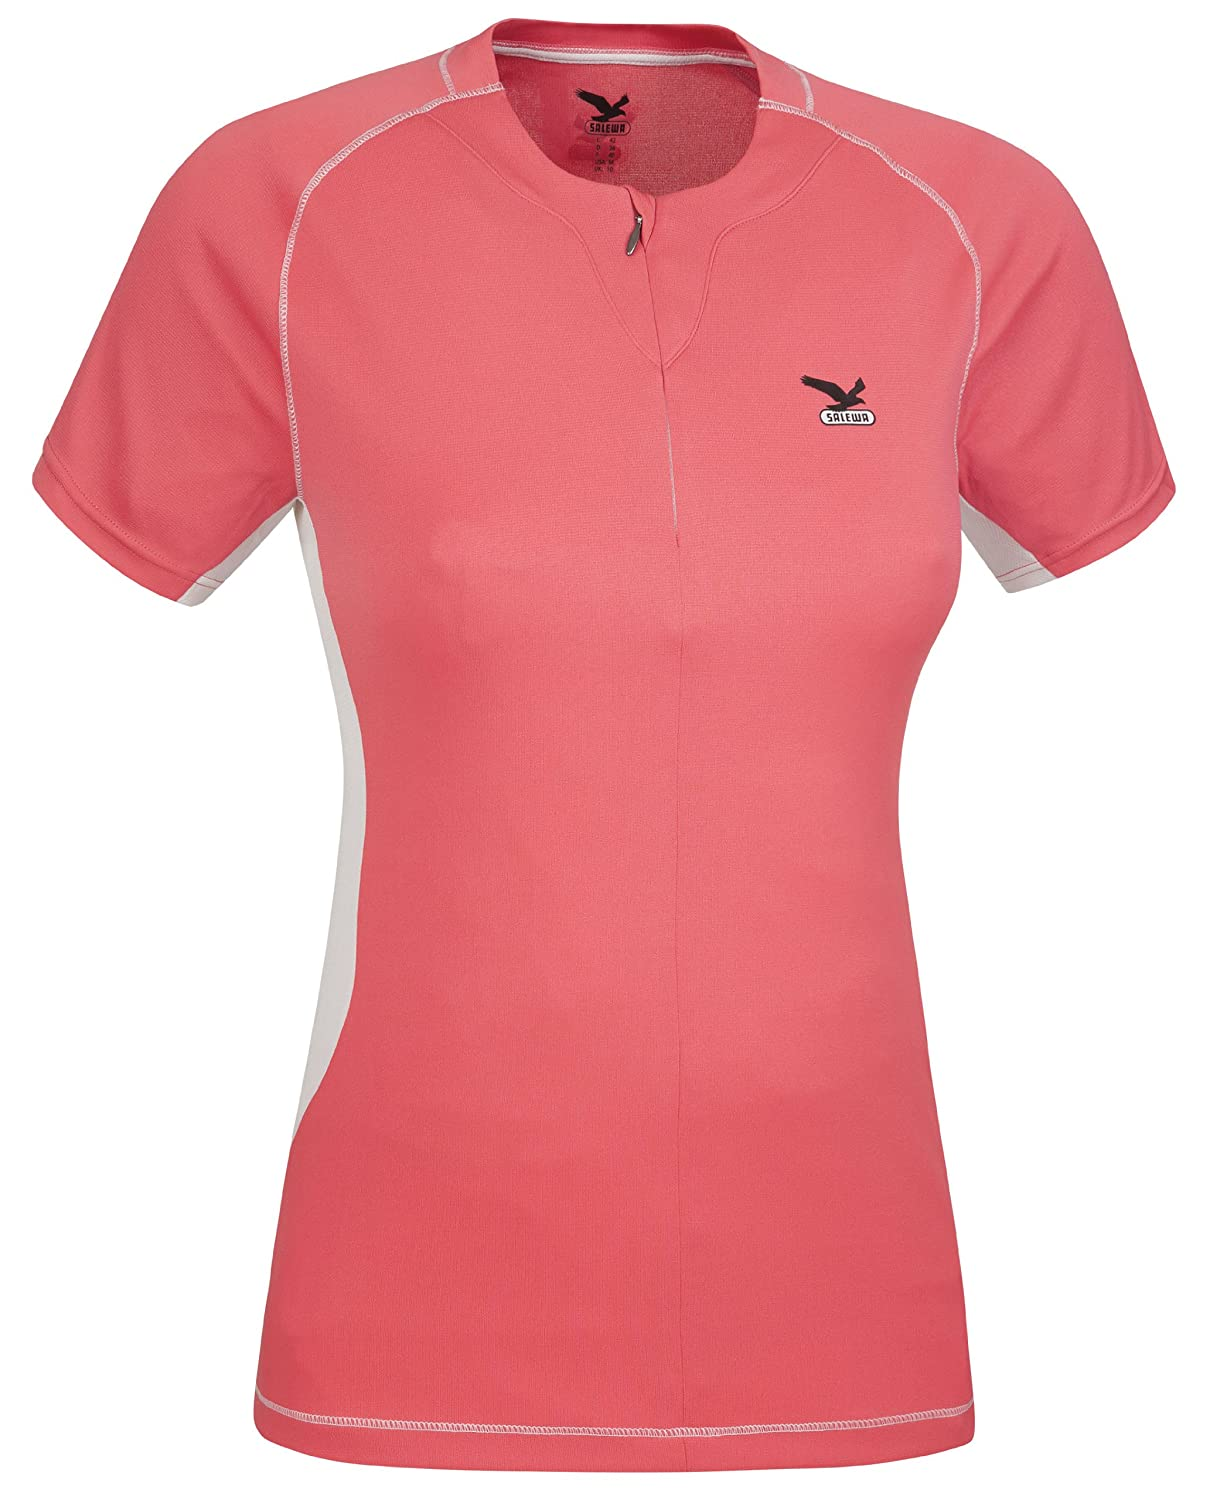 SALEWA T-Shirt Galiant 2.0 Dry W Short Sleeve Tee - Camiseta, color rosa, talla 2XL